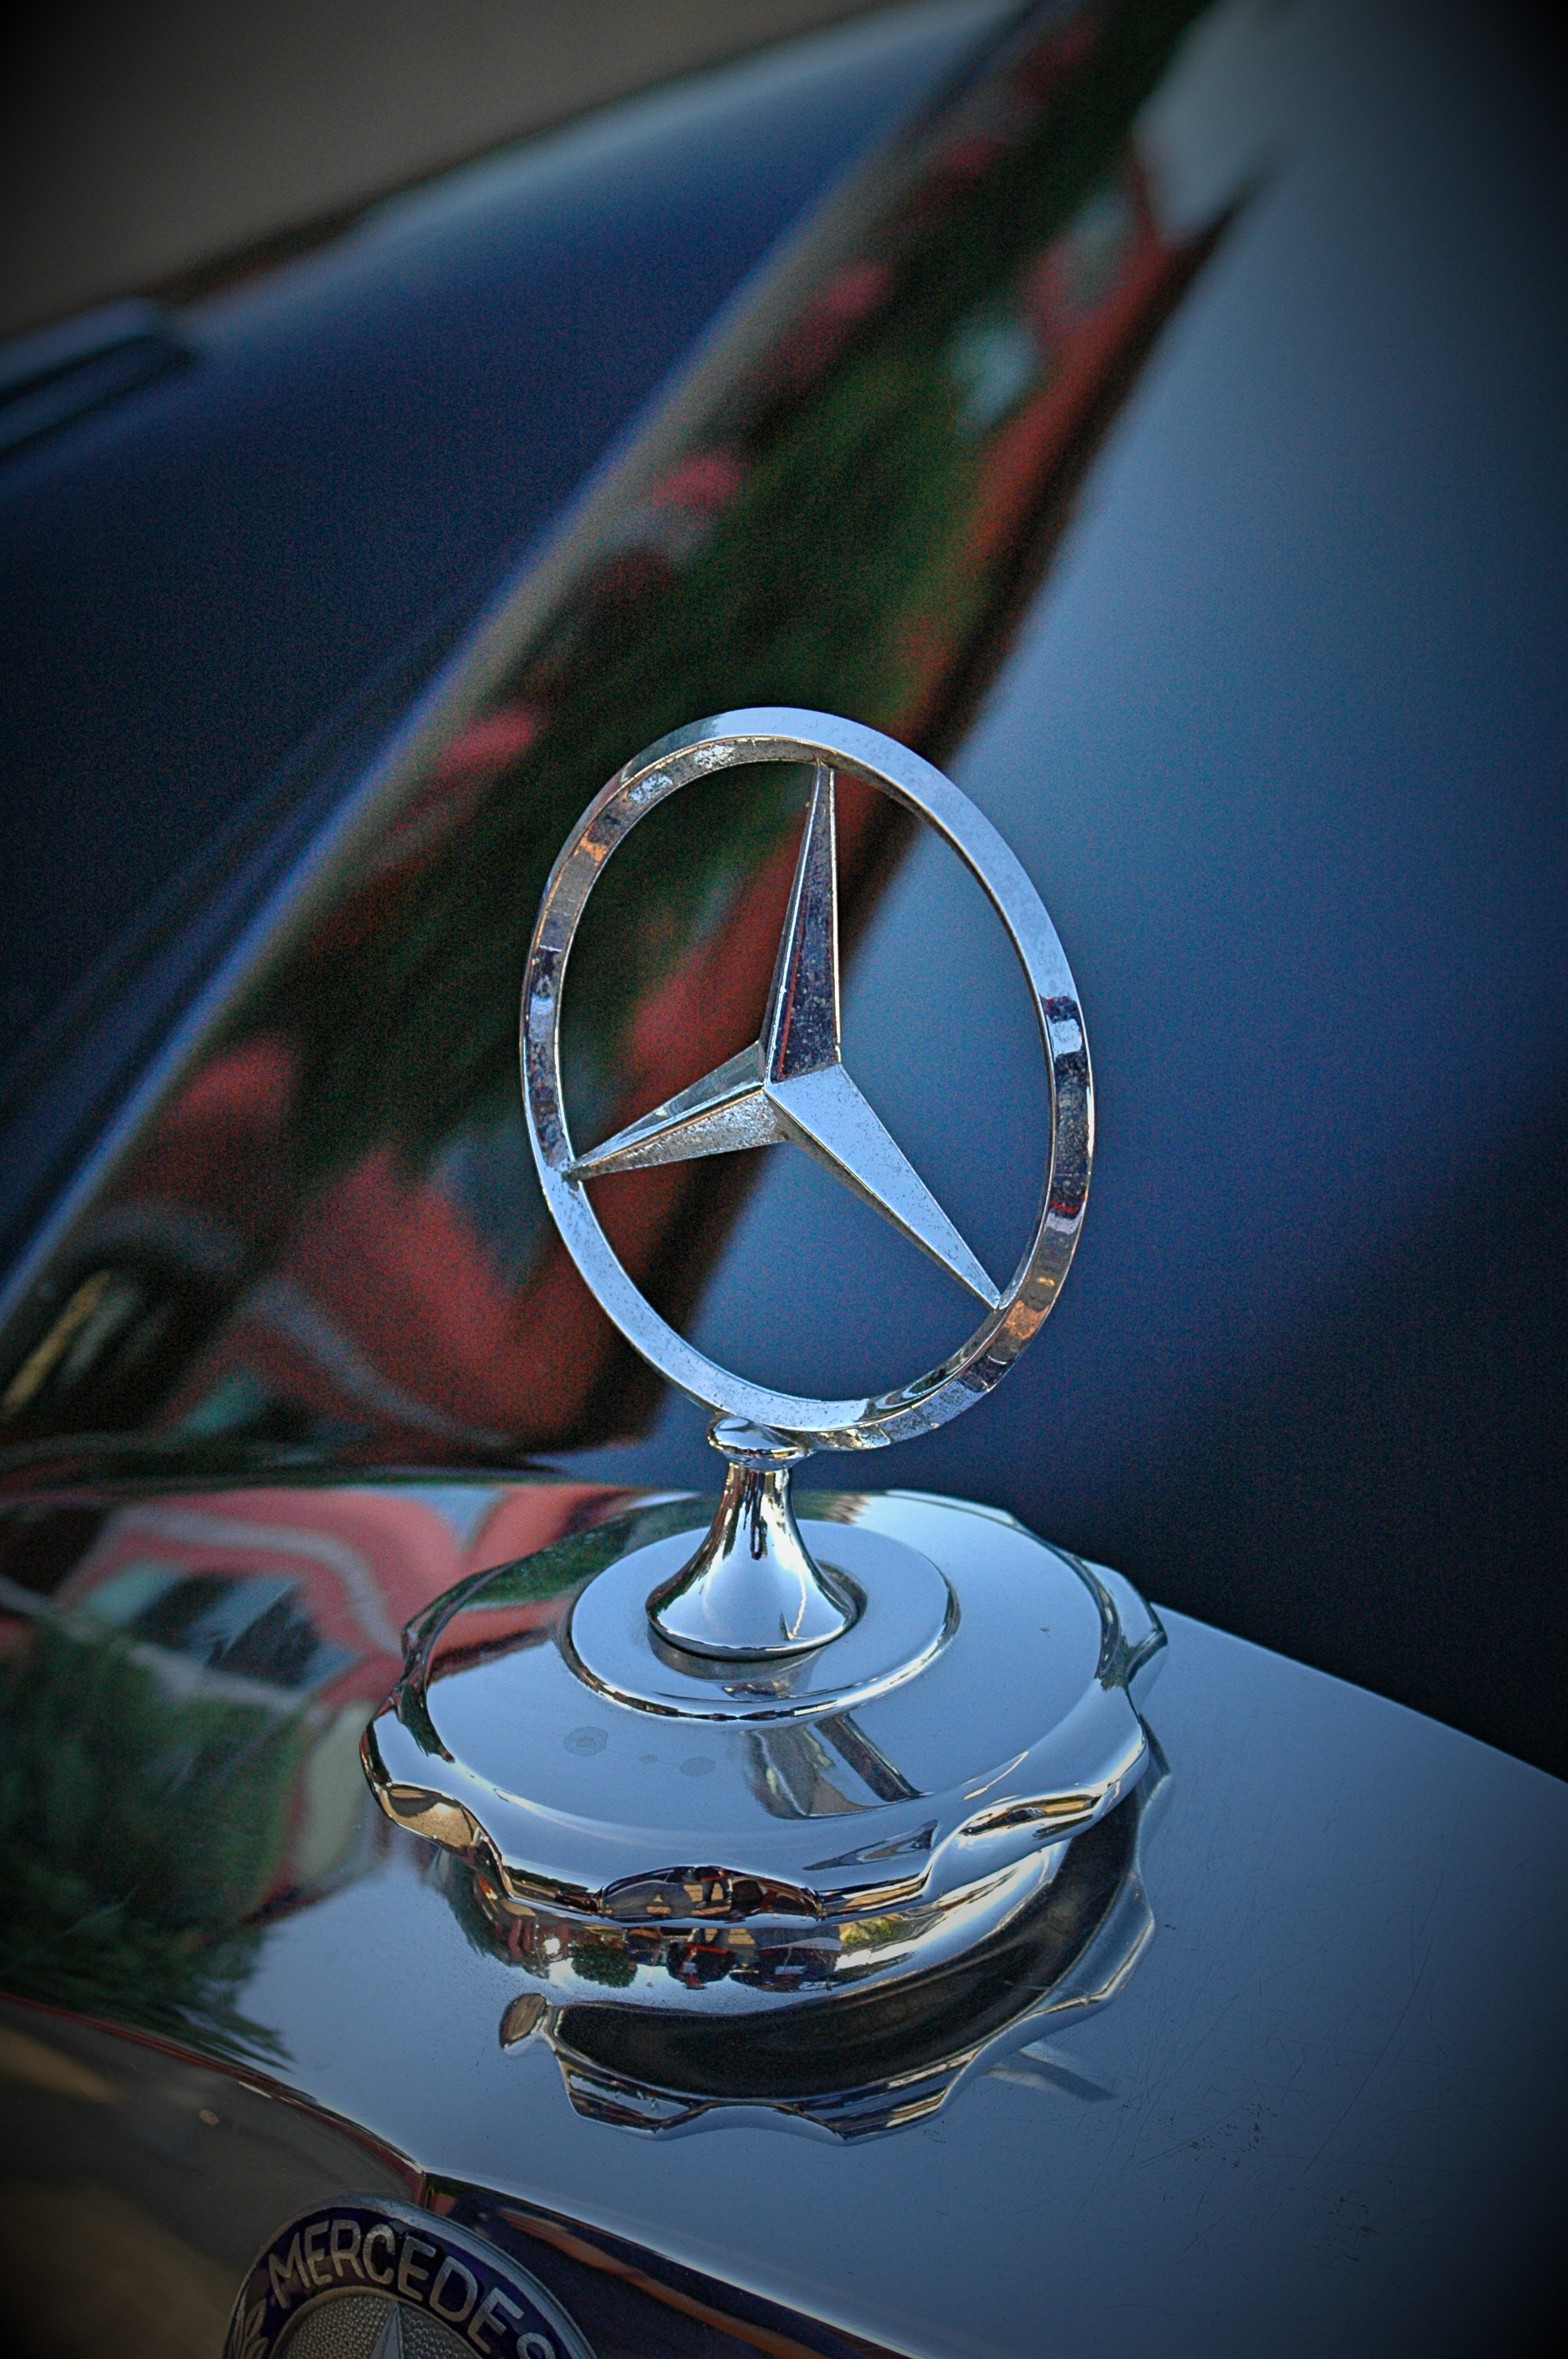 Mercedes Benz star emblem